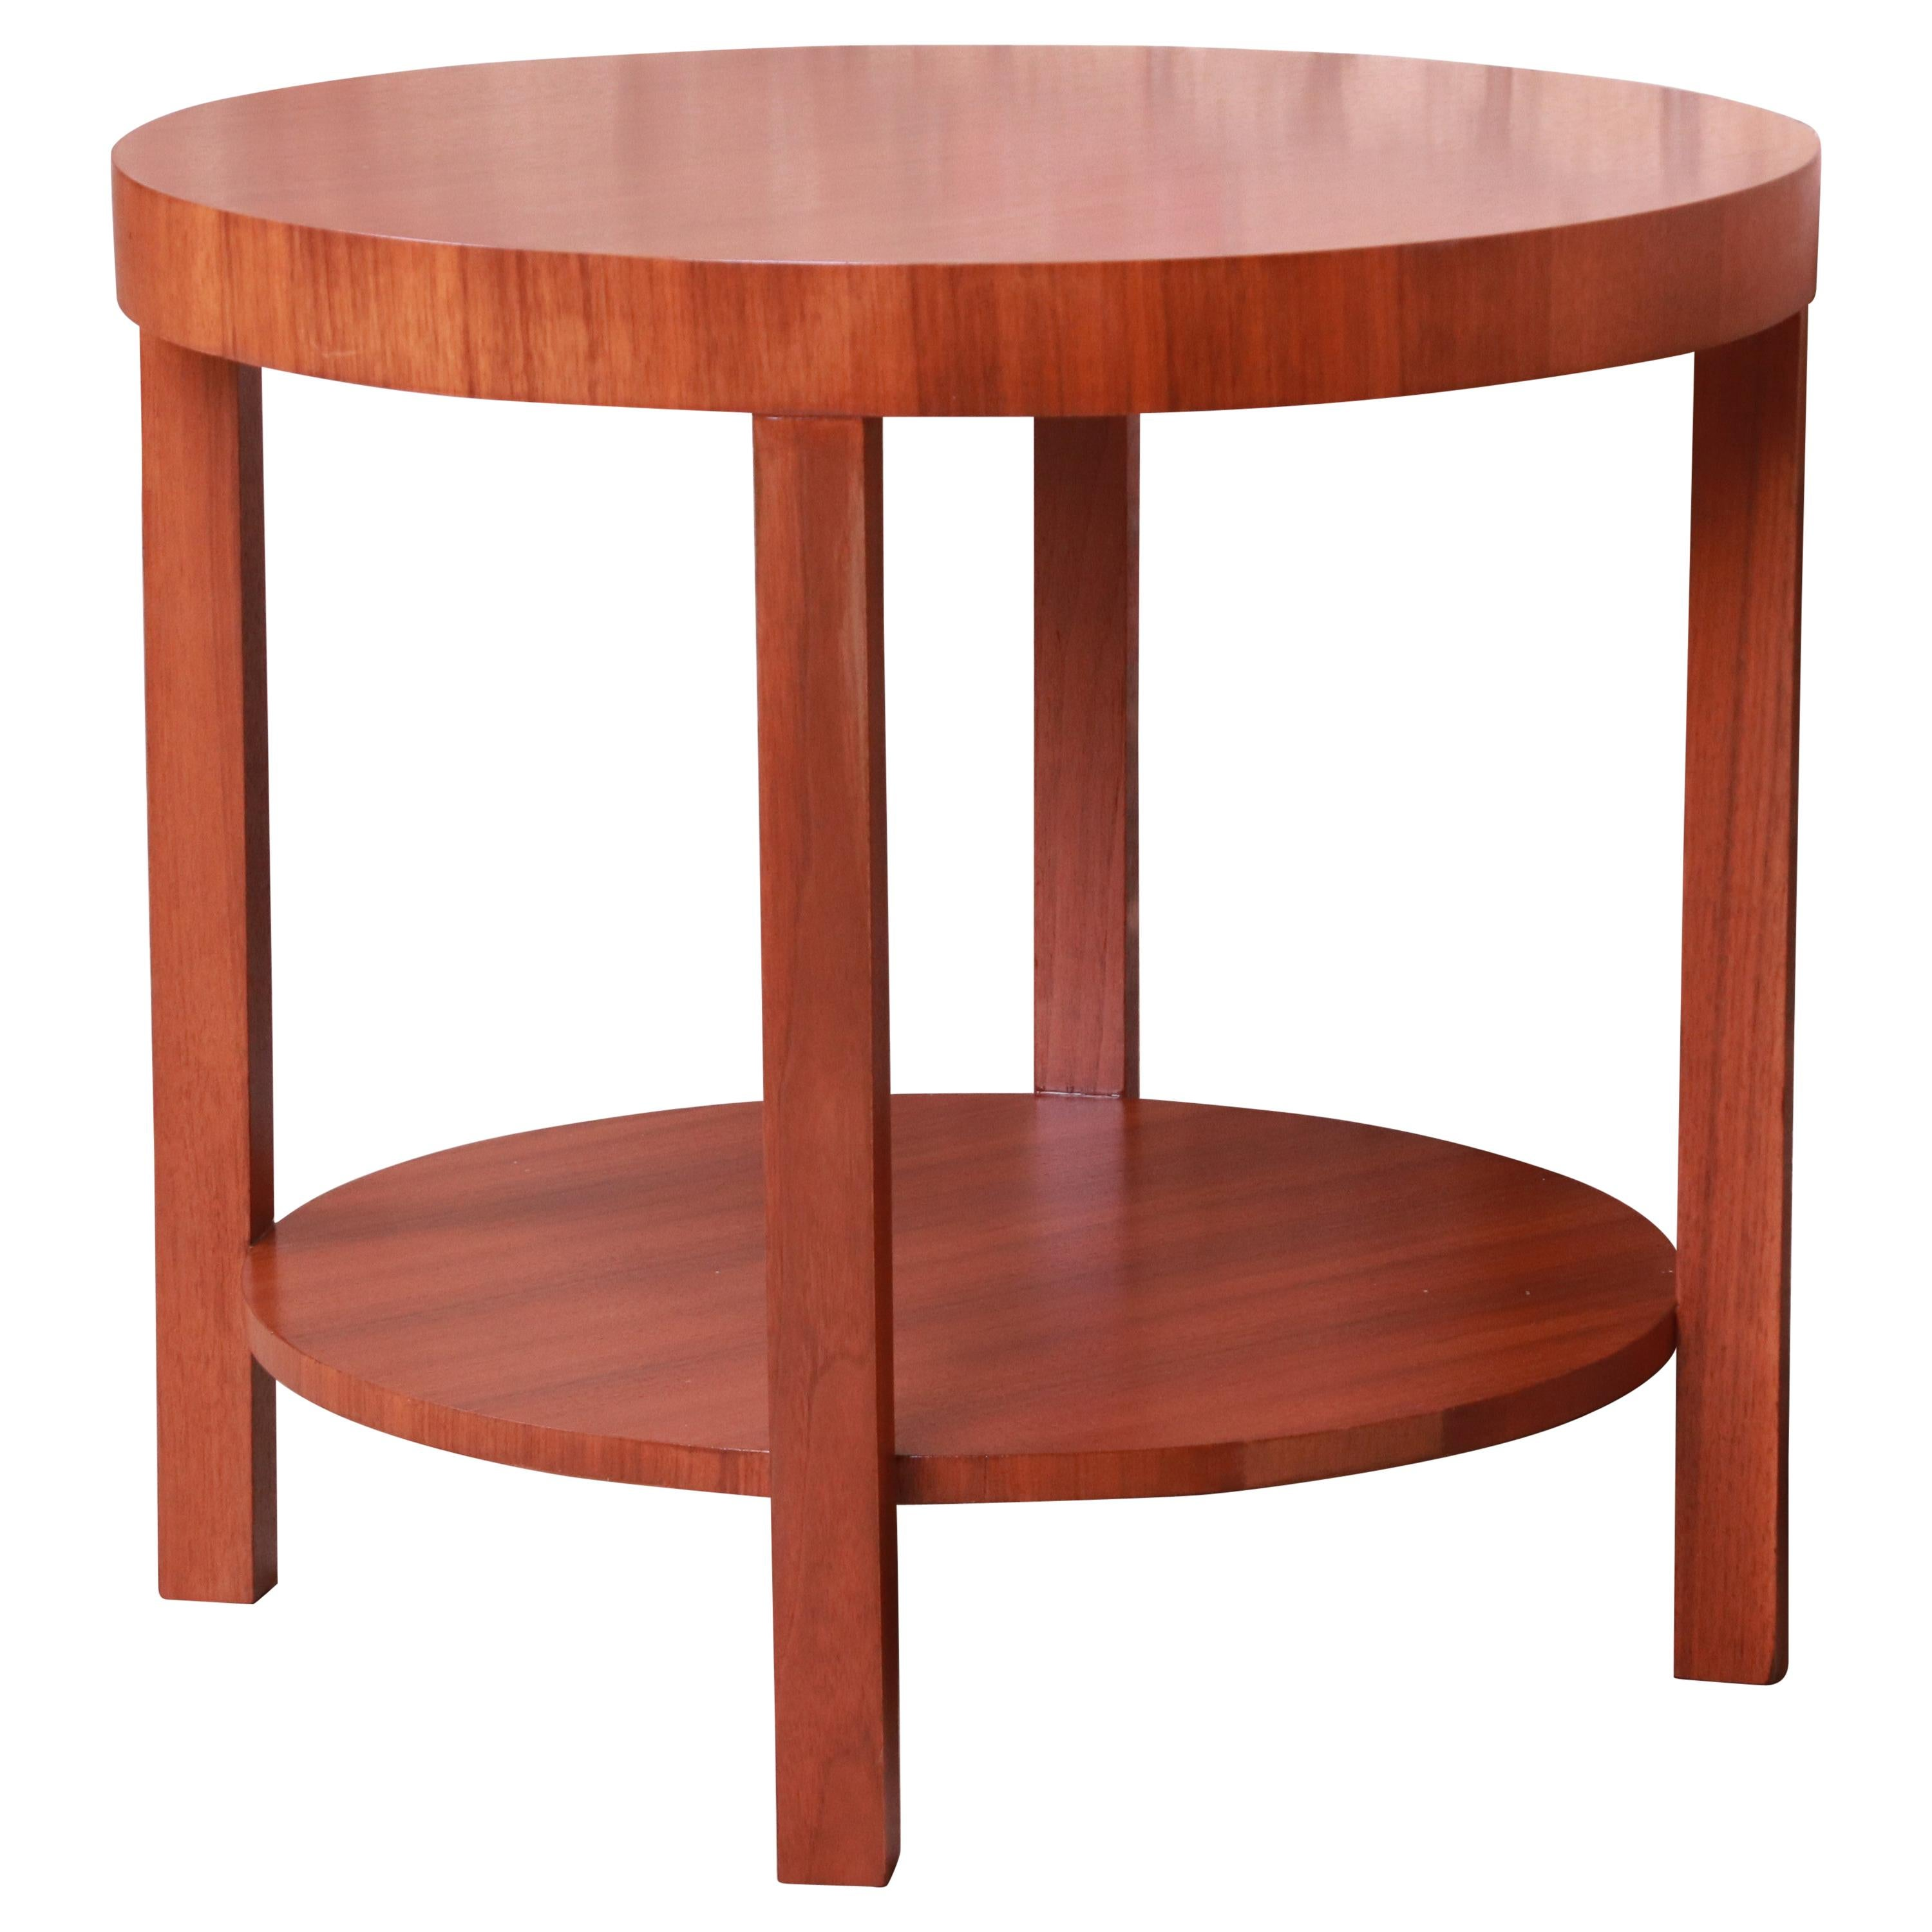 Gilbert Rohde for Herman Miller Walnut Occasional Side Table, Newly Refinished